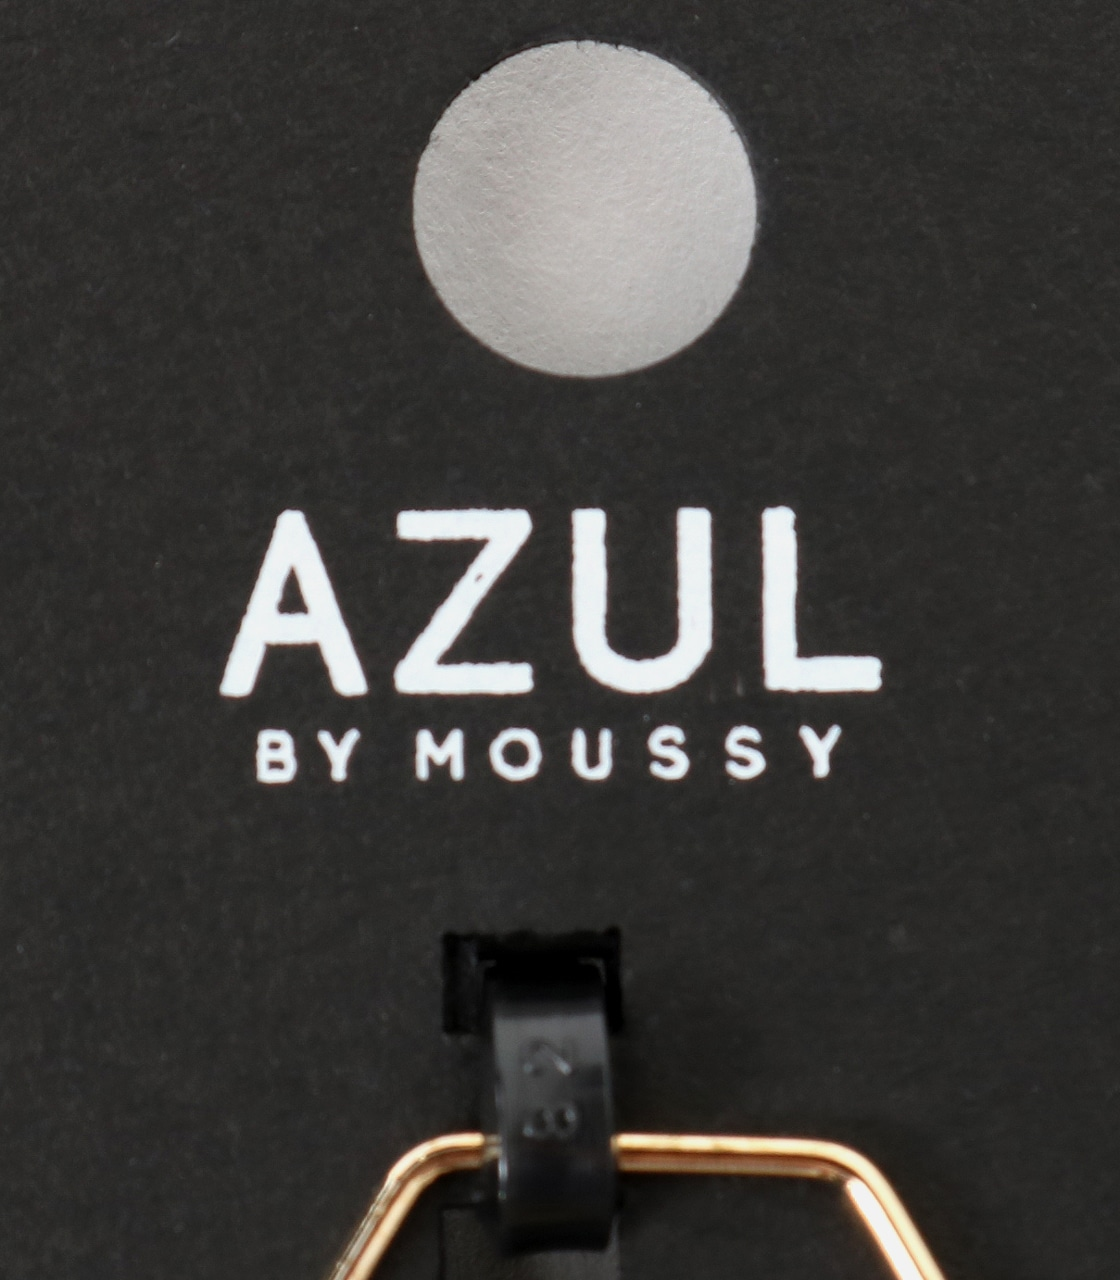 【AZUL BY MOUSSY】チェーンモチーフ5本SETリング 詳細画像 L/GLD 9